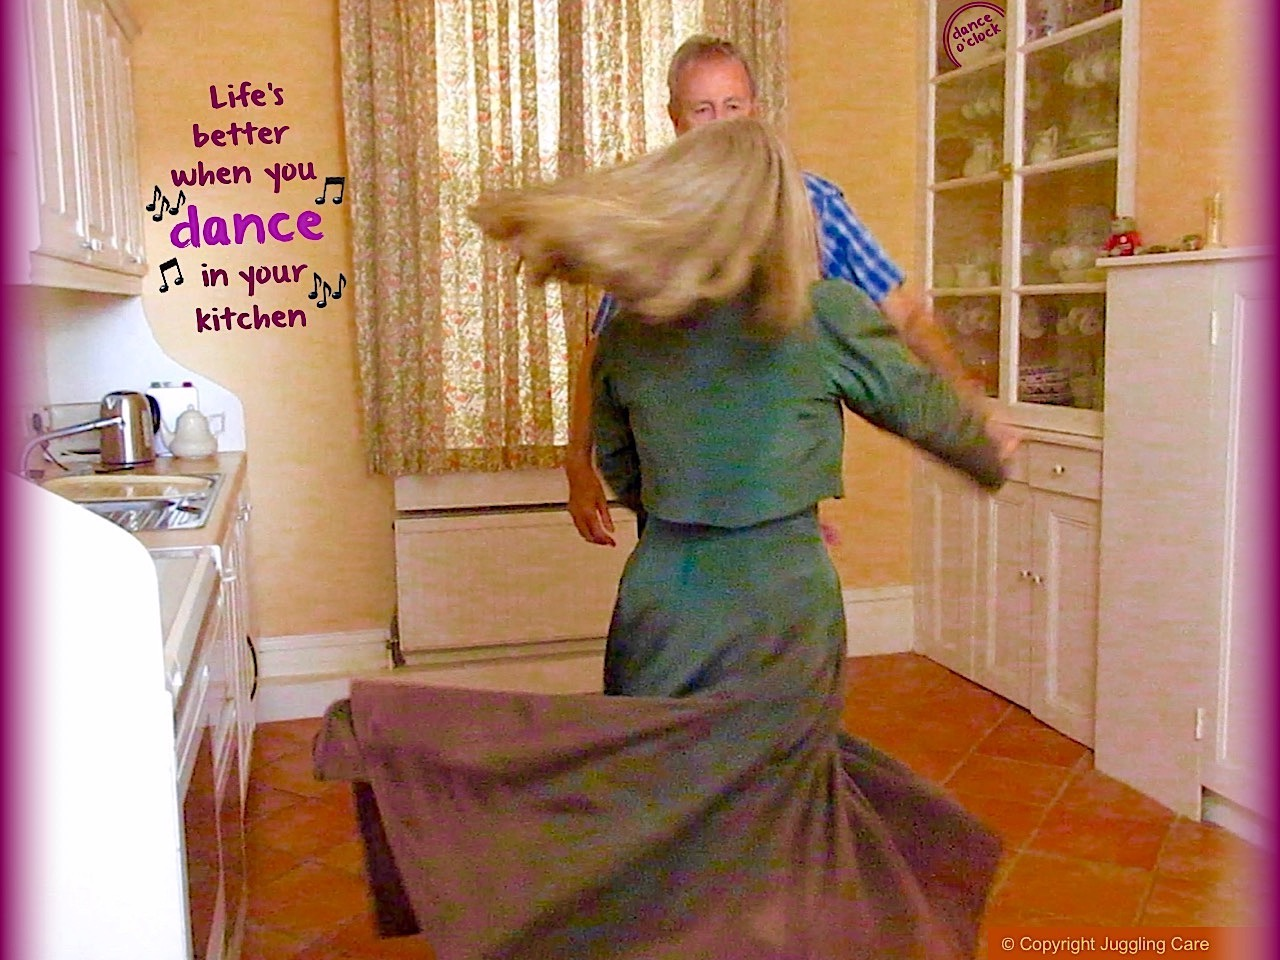 Man and woman dancing in a kitchen